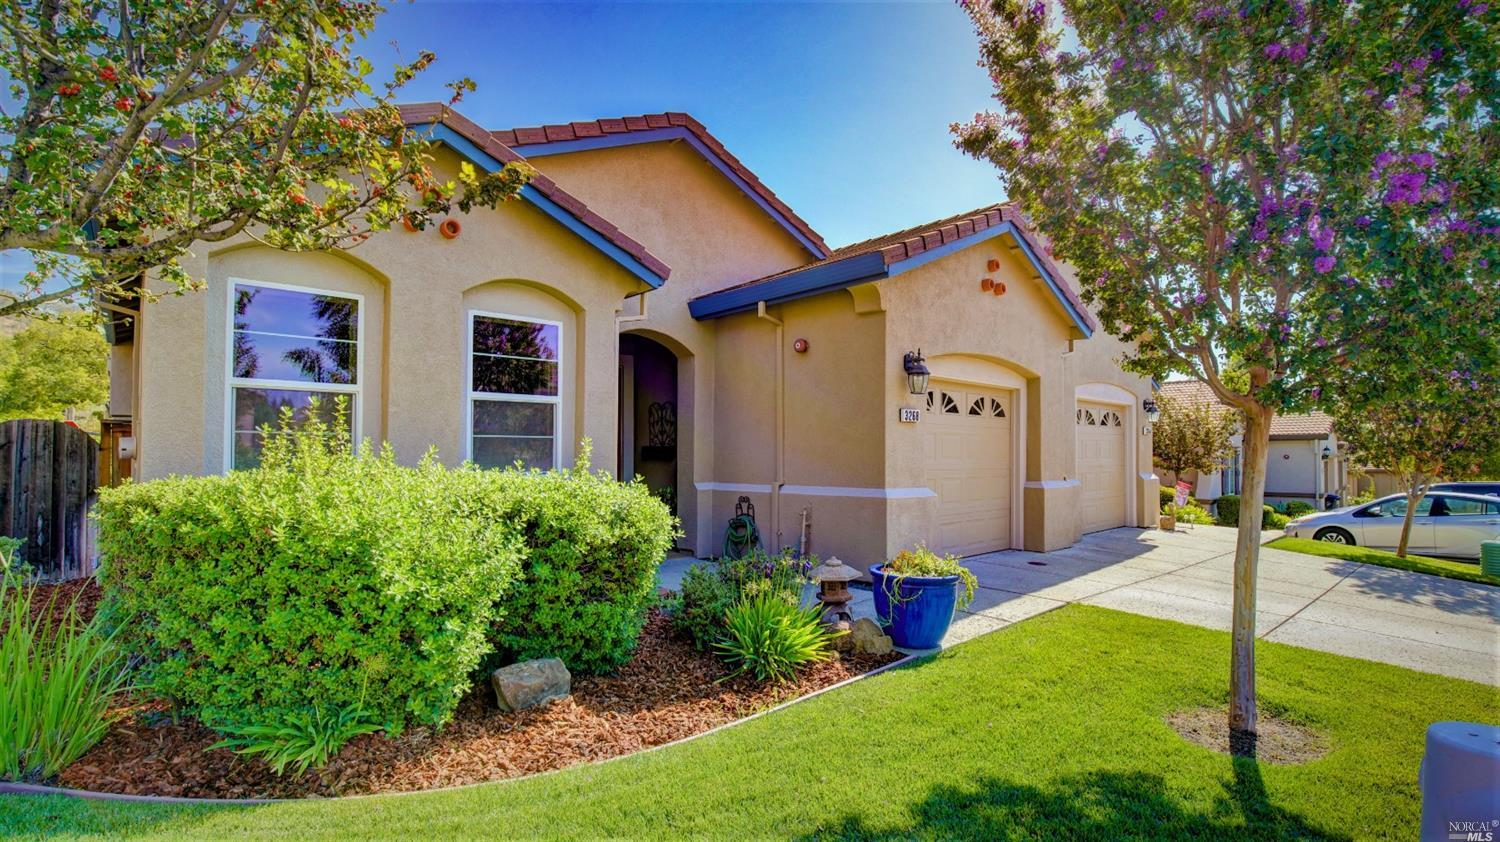 WOW! Beautiful Senior 62+ Duet Home in the Exclusive Gated Community of Rancho Solano! Exterior Just